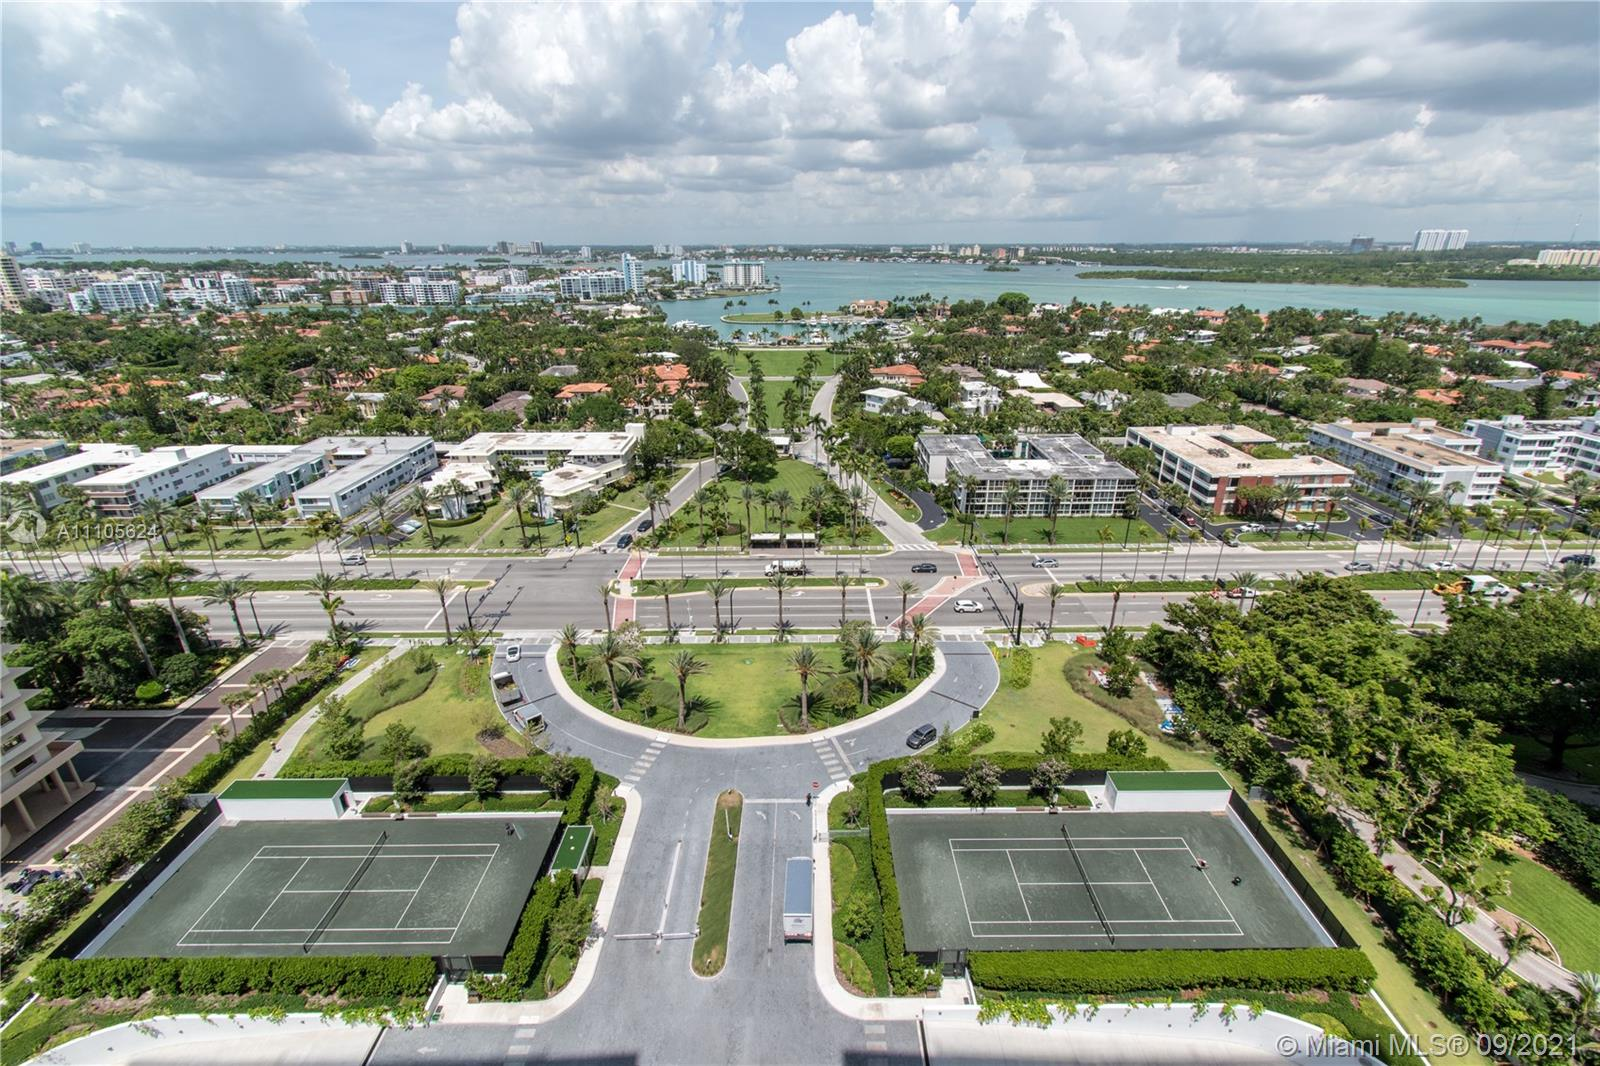 10203 Collins Ave, Unit #1903N Luxury Real Estate